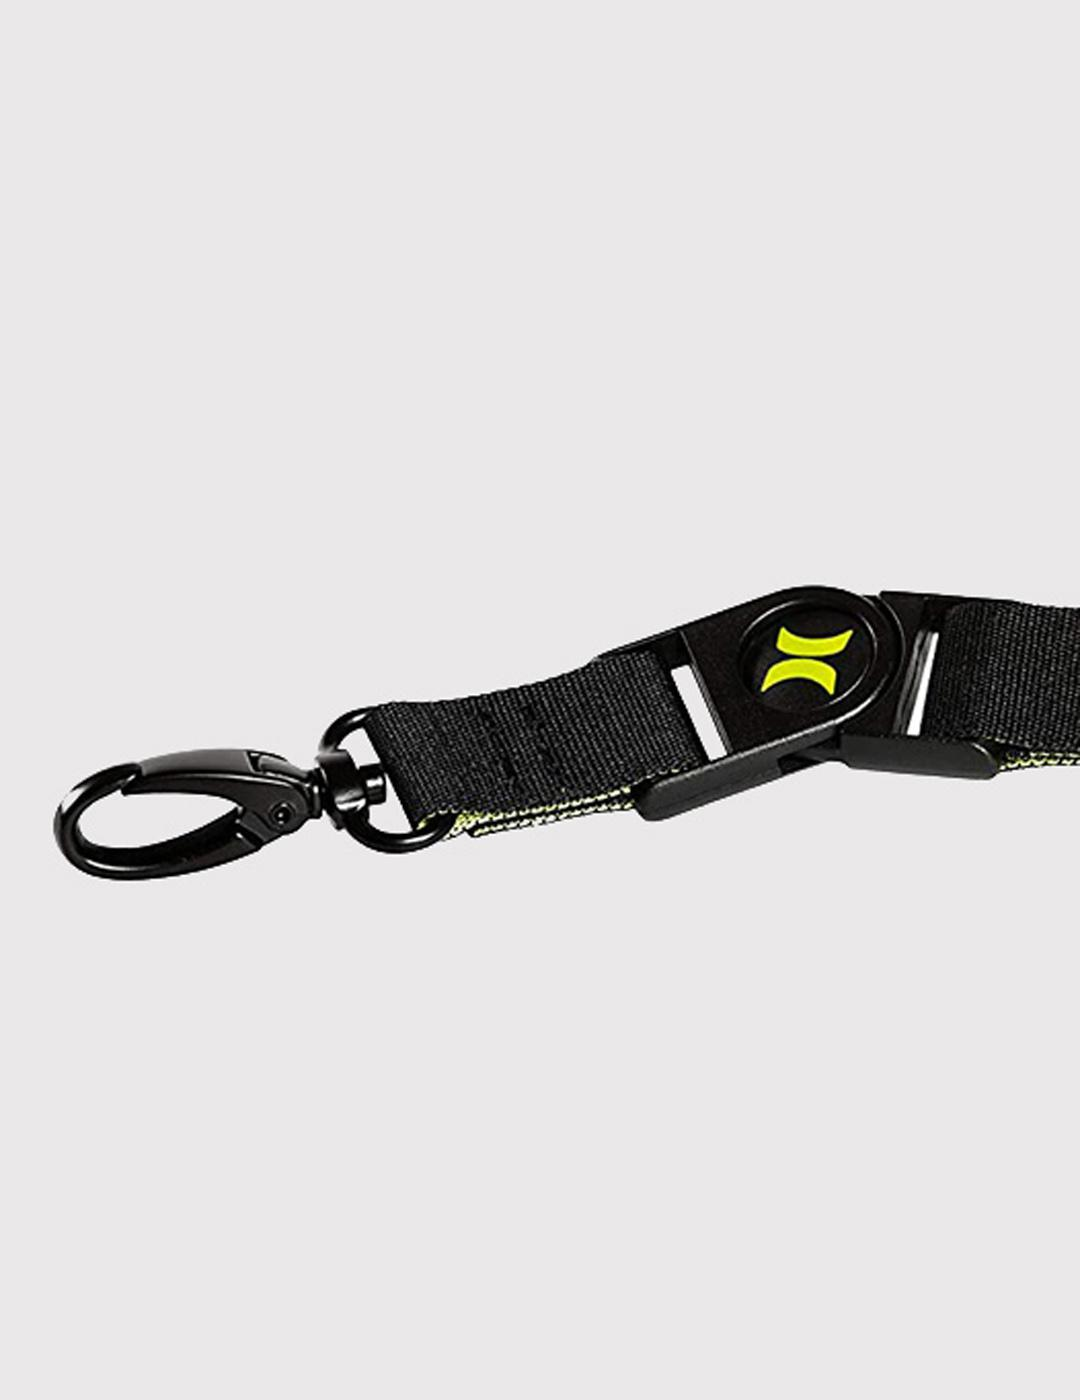 Llavero O-O LANYARD - LIGHT CARBON